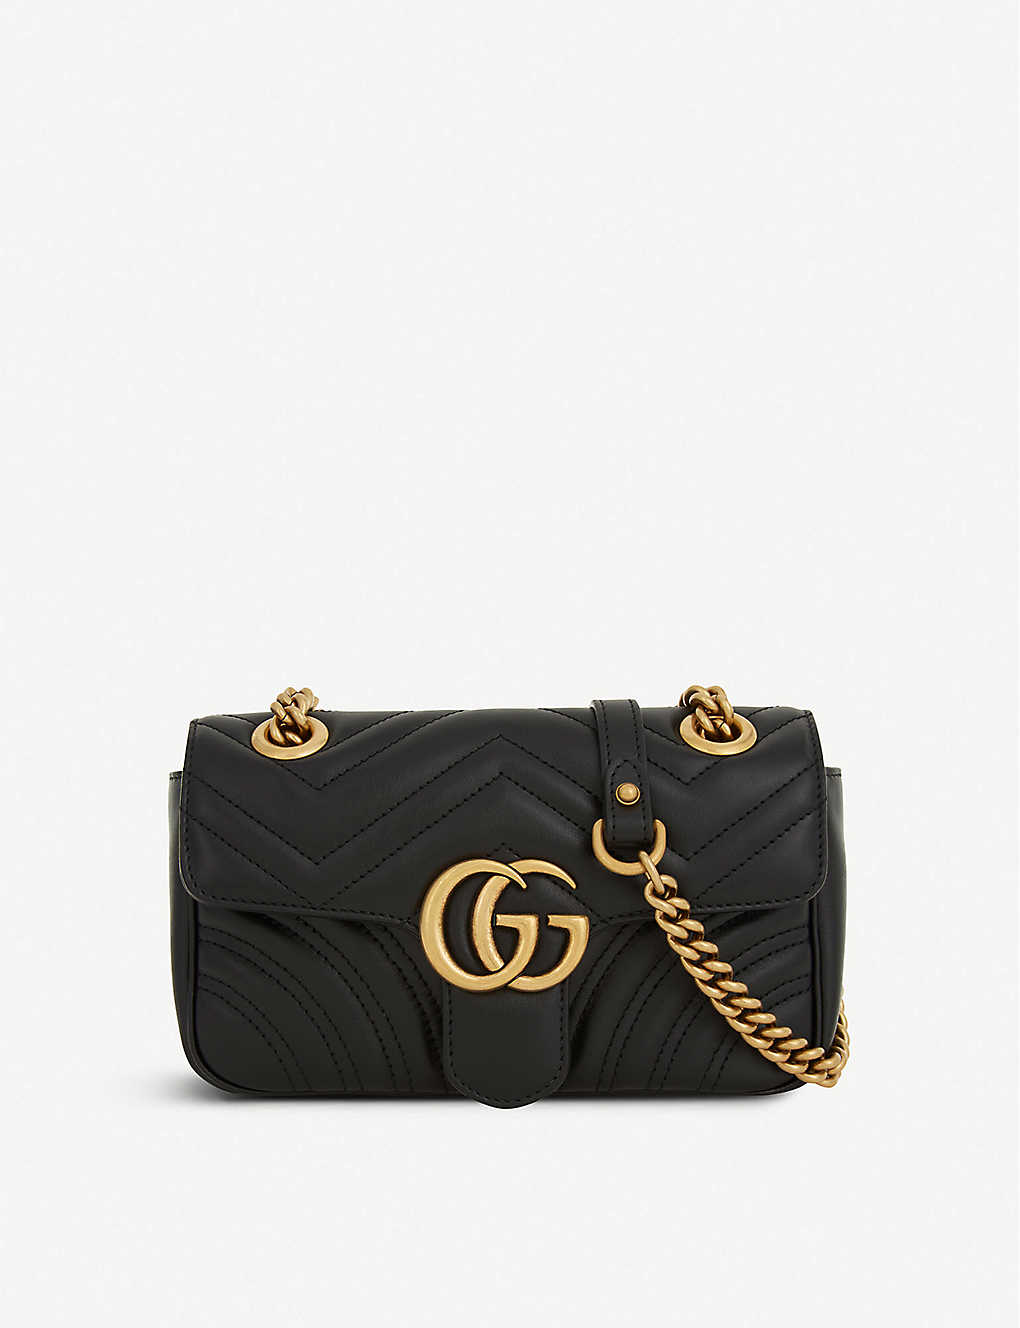 0d68021b8729 GUCCI - Marmont GG mini leather cross-body bag | Selfridges.com